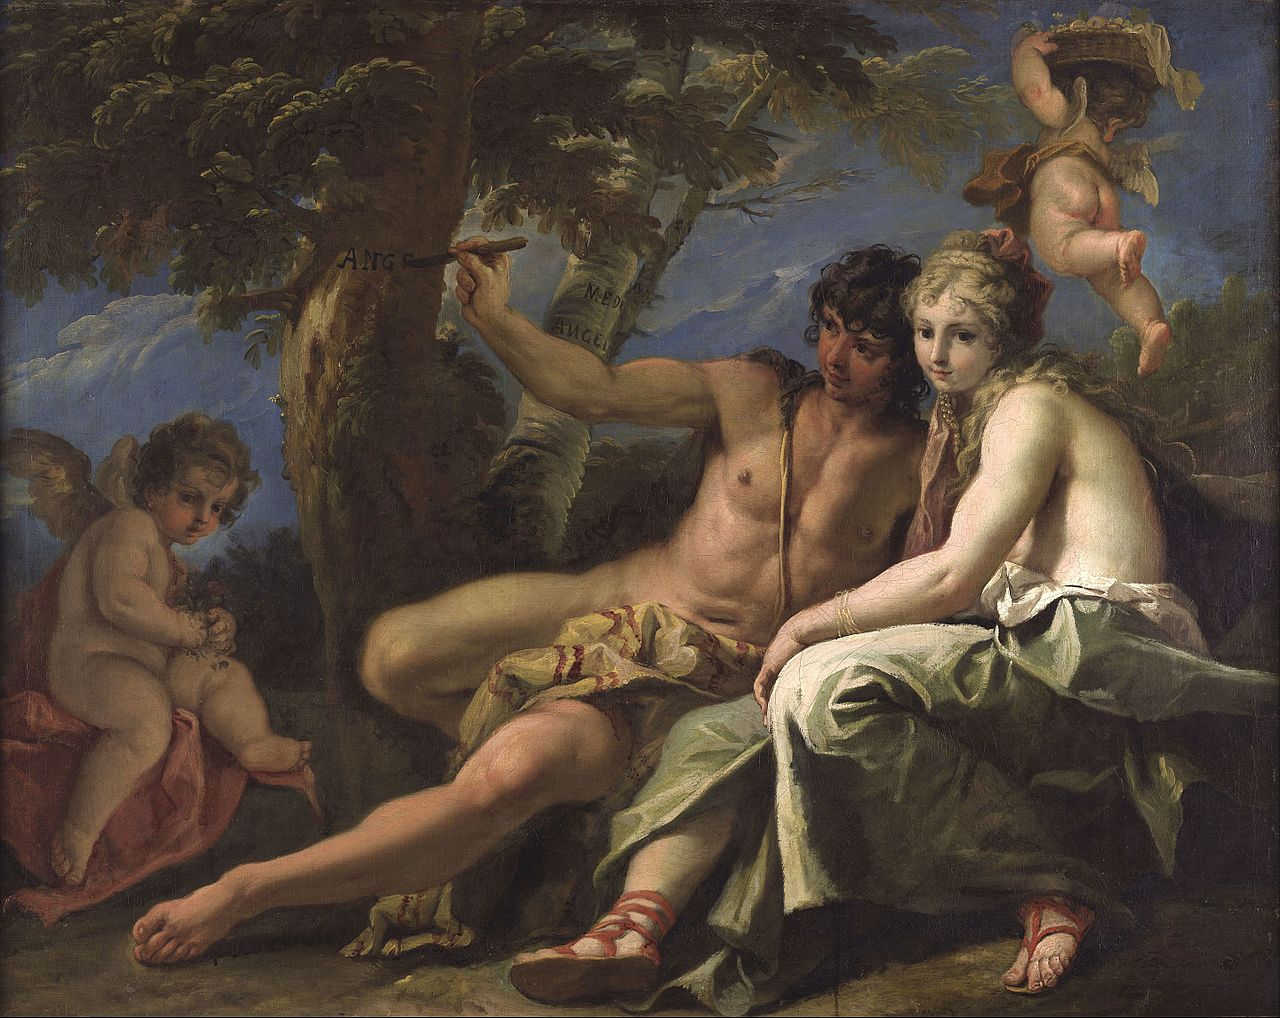 Sebastiano Ricci: Medoro and Angelica